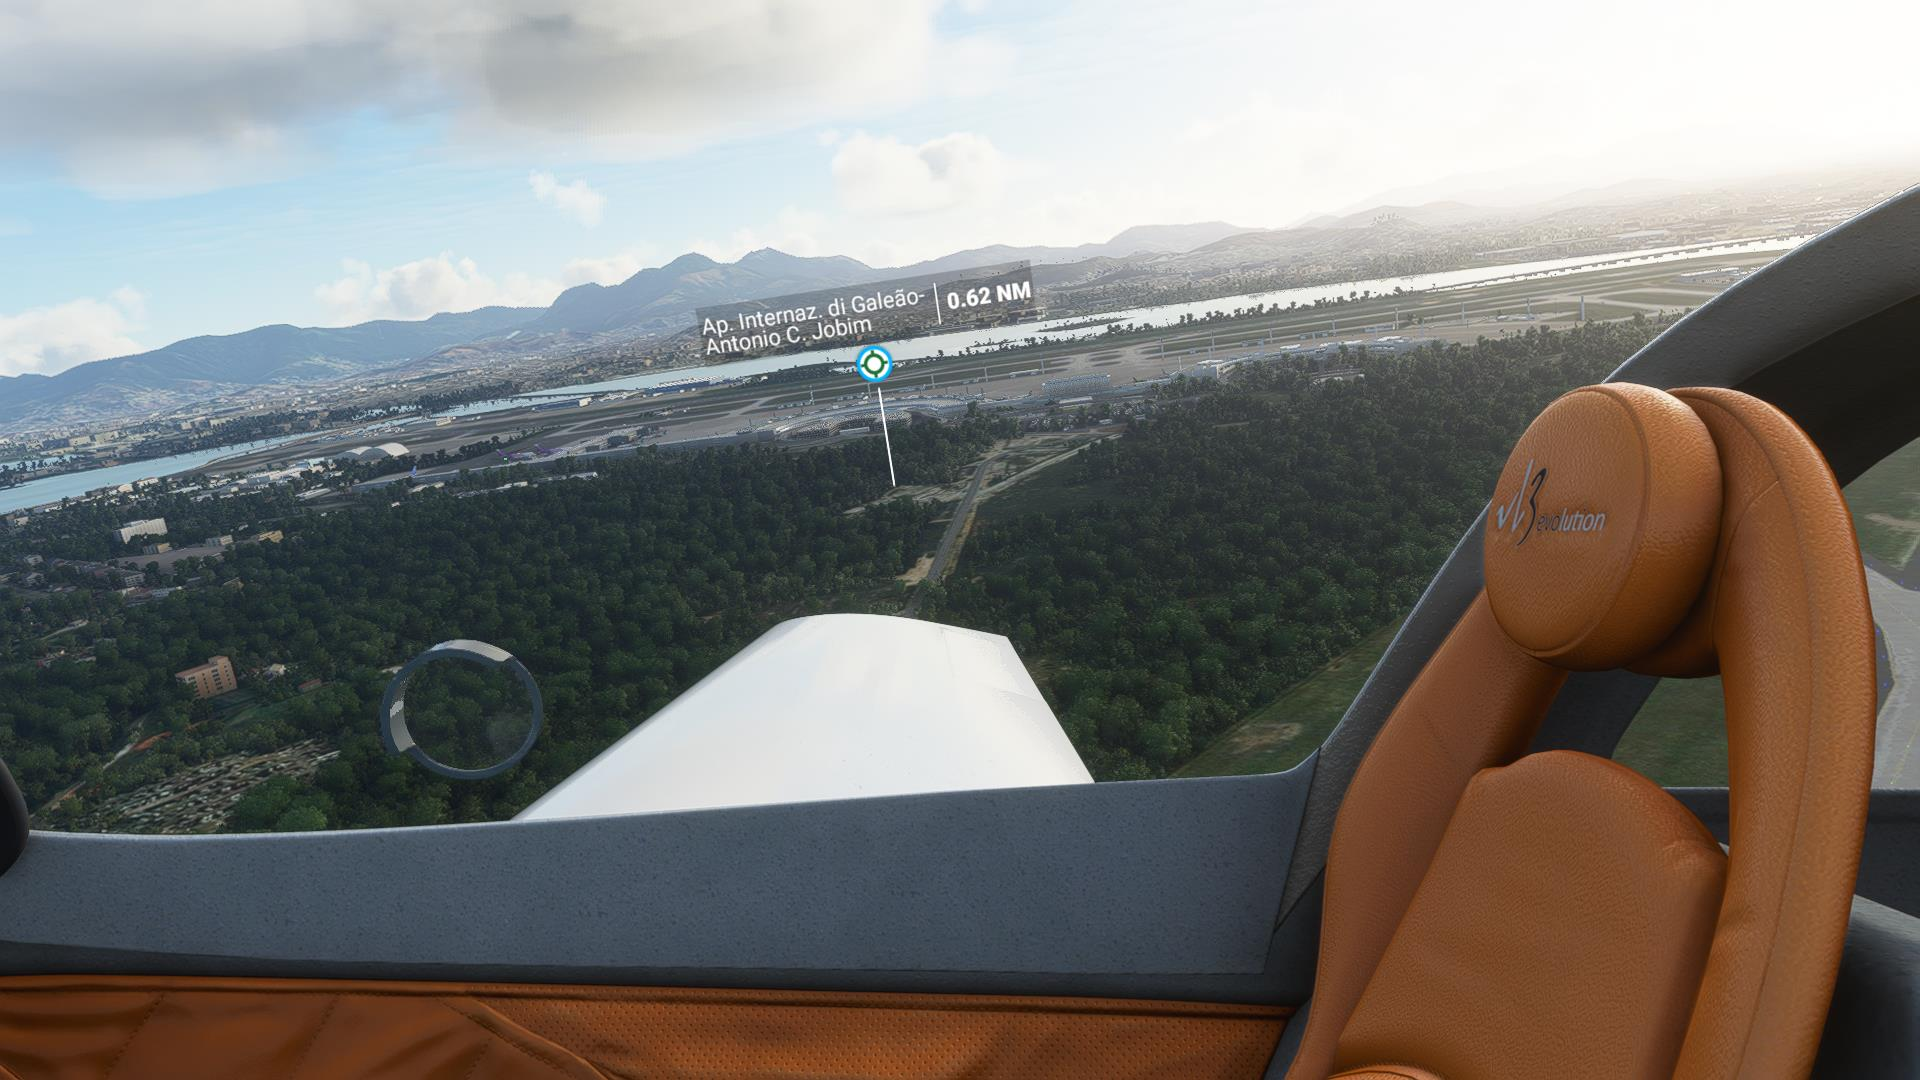 https://vivendobyte.blob.core.windows.net/57793/Microsoft Flight Simulator 13_01_2021 19_46_18.jpg